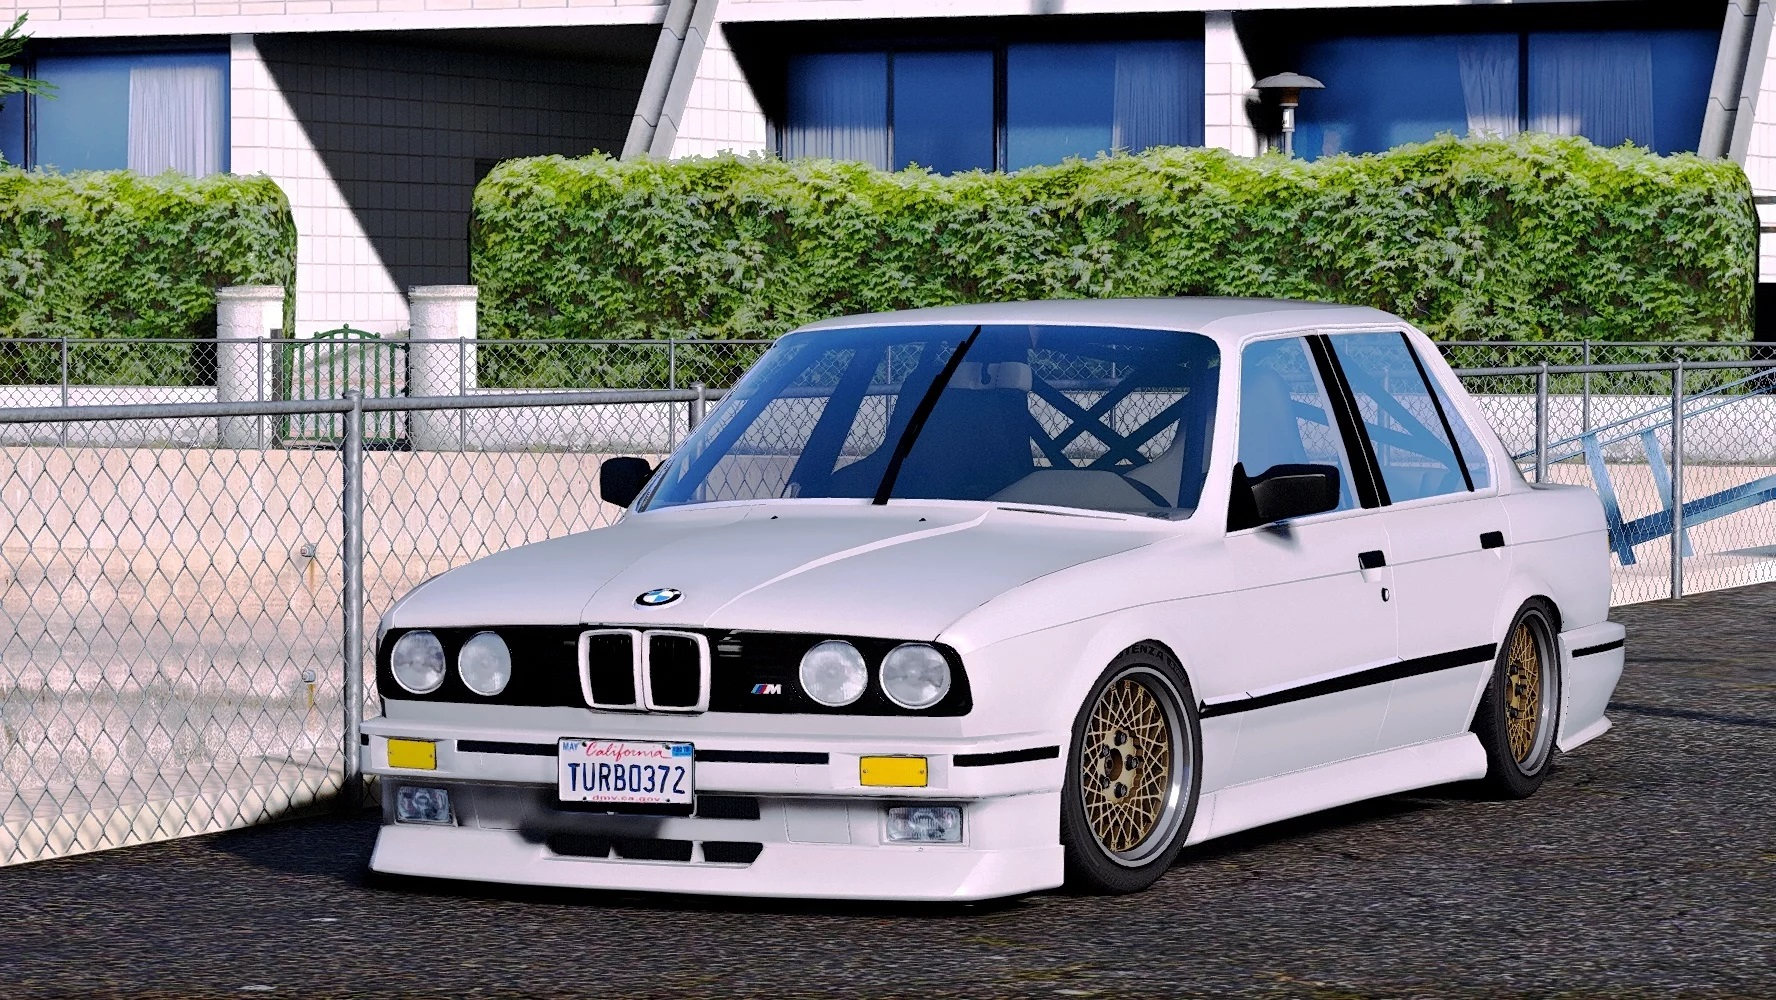 1986 Bmw 325e E30 Pfl 2in1 Add On Replace Tuning Extras 1 0 Gta5mod Net